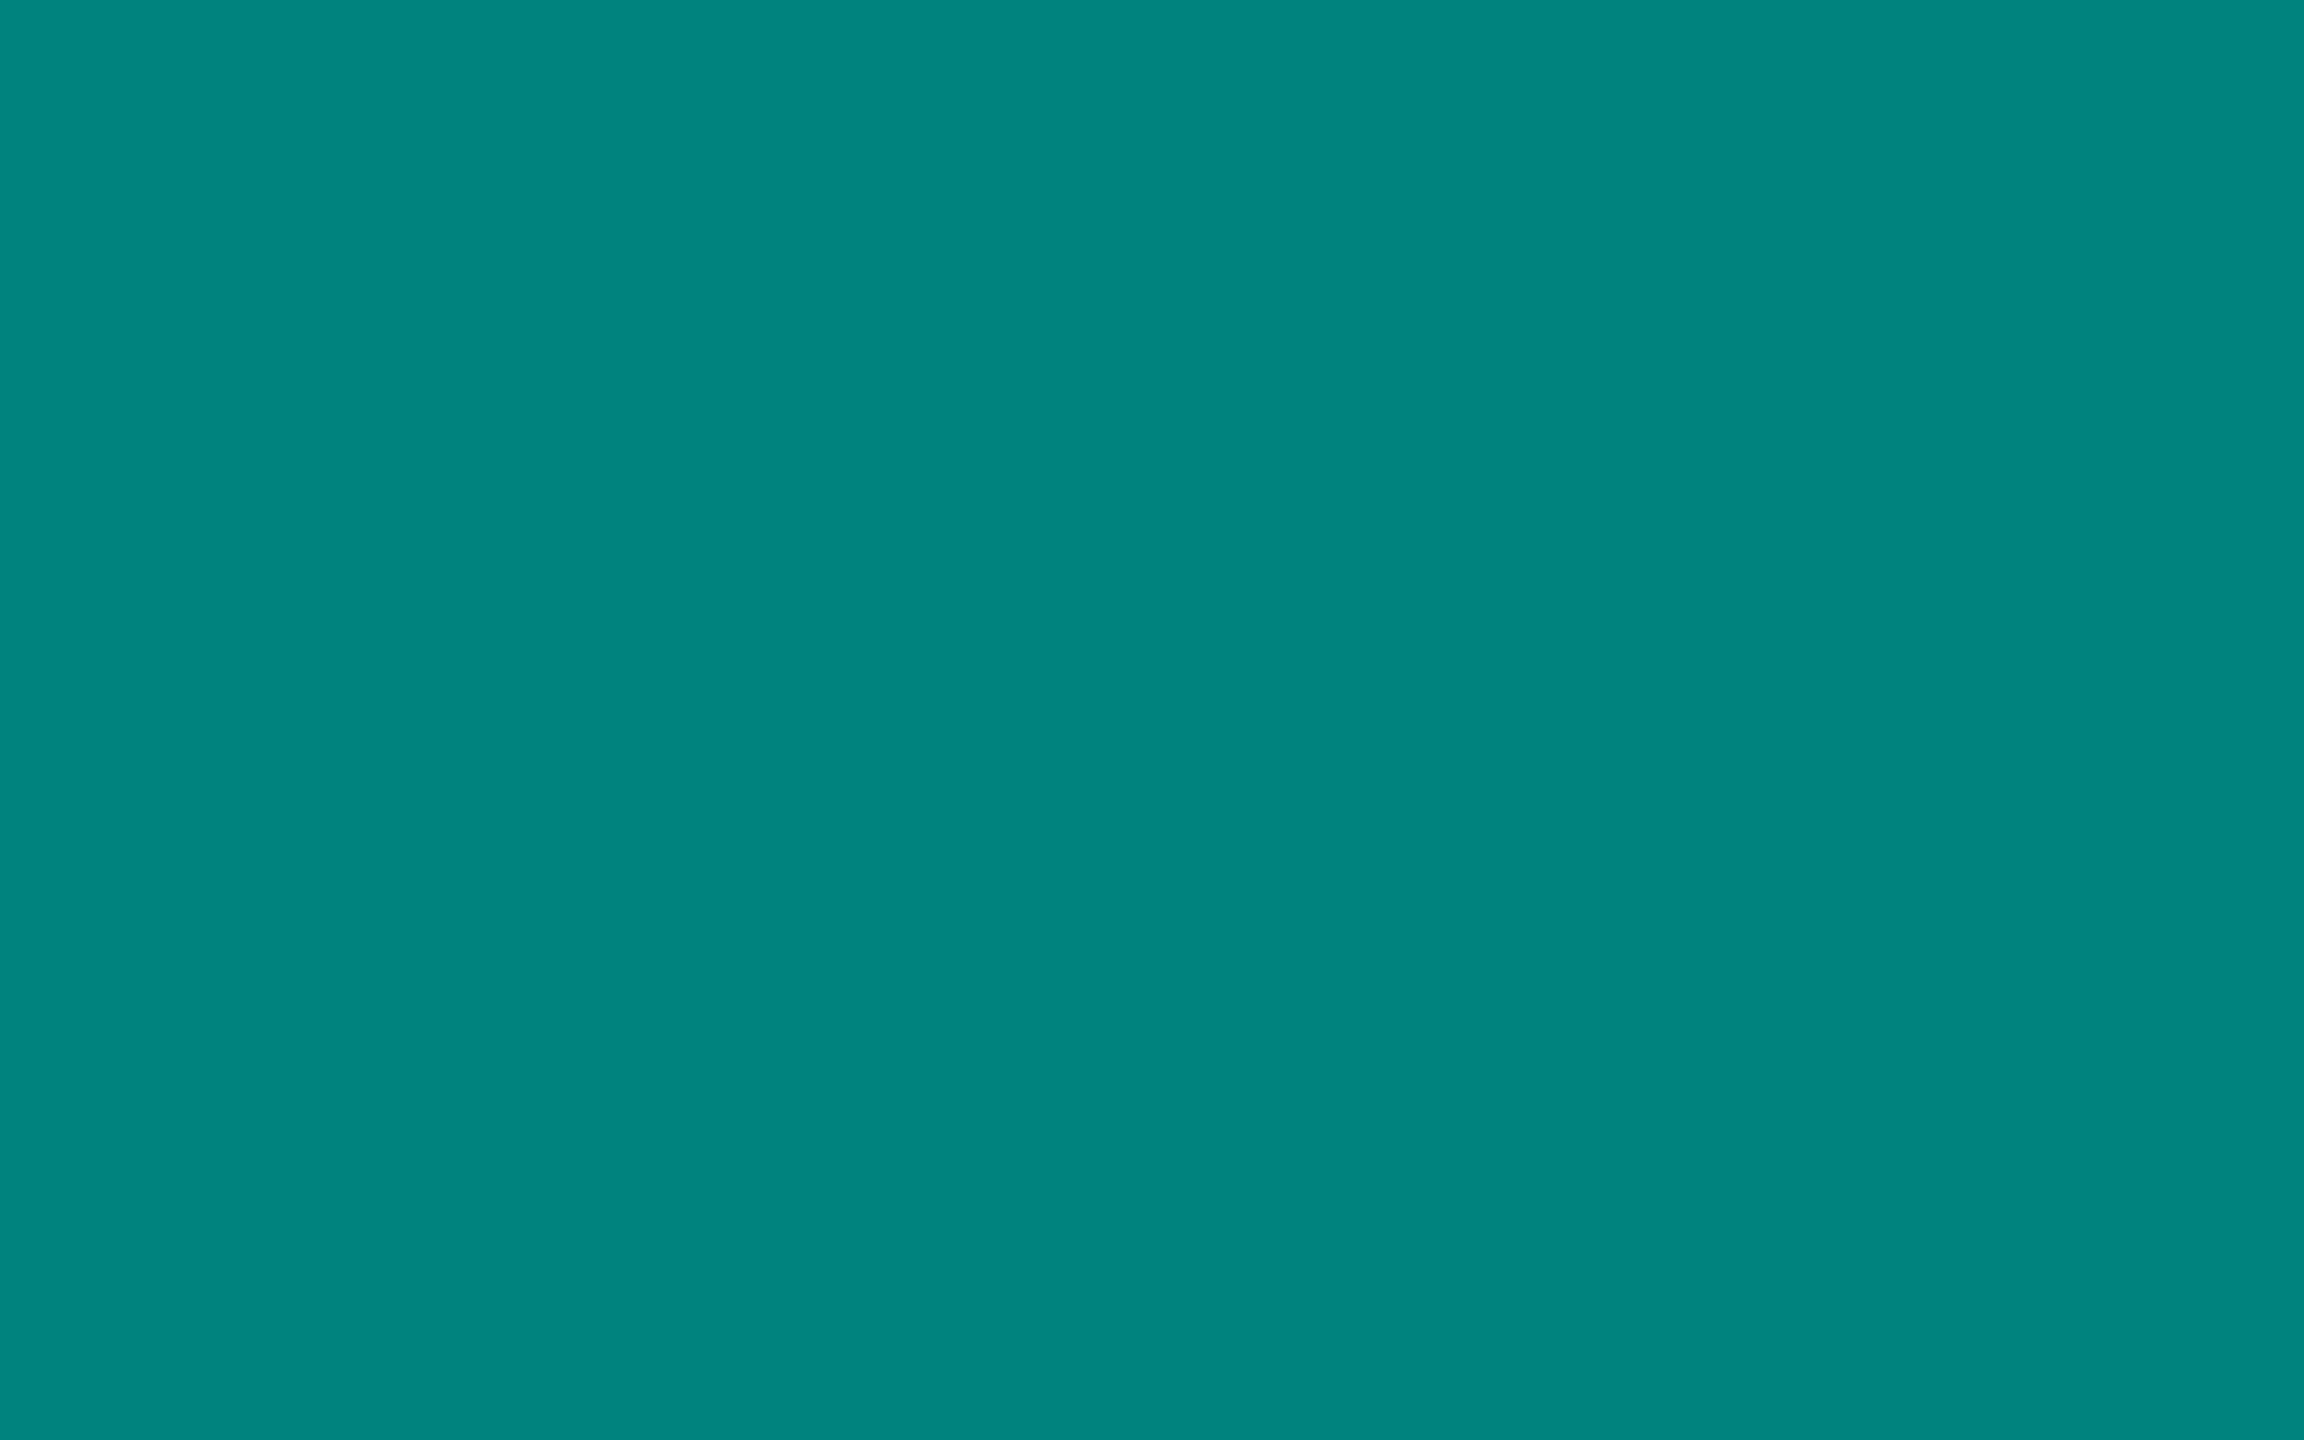 2304x1440 Teal Green Solid Color Background